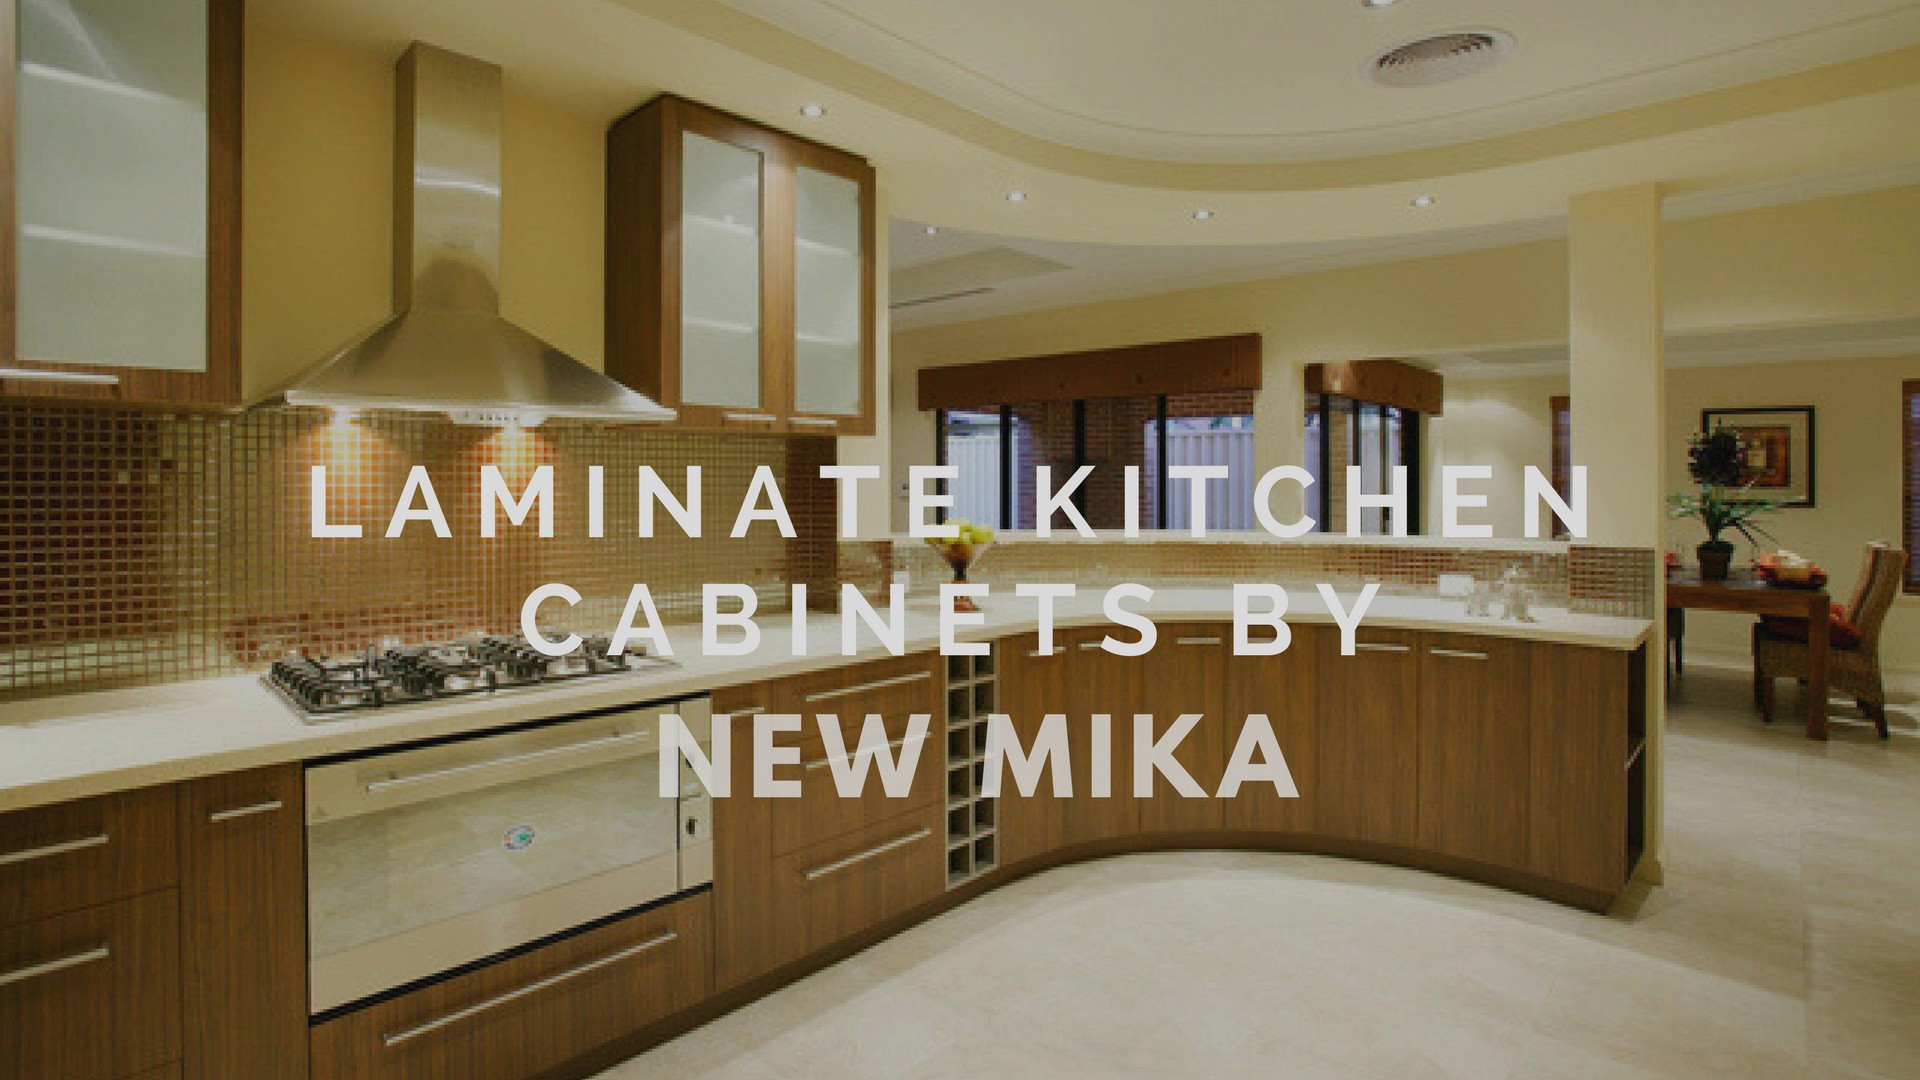 Why Choose Laminate Kitchen Cabinets Over Solid Wood Ones By New Mika Medium